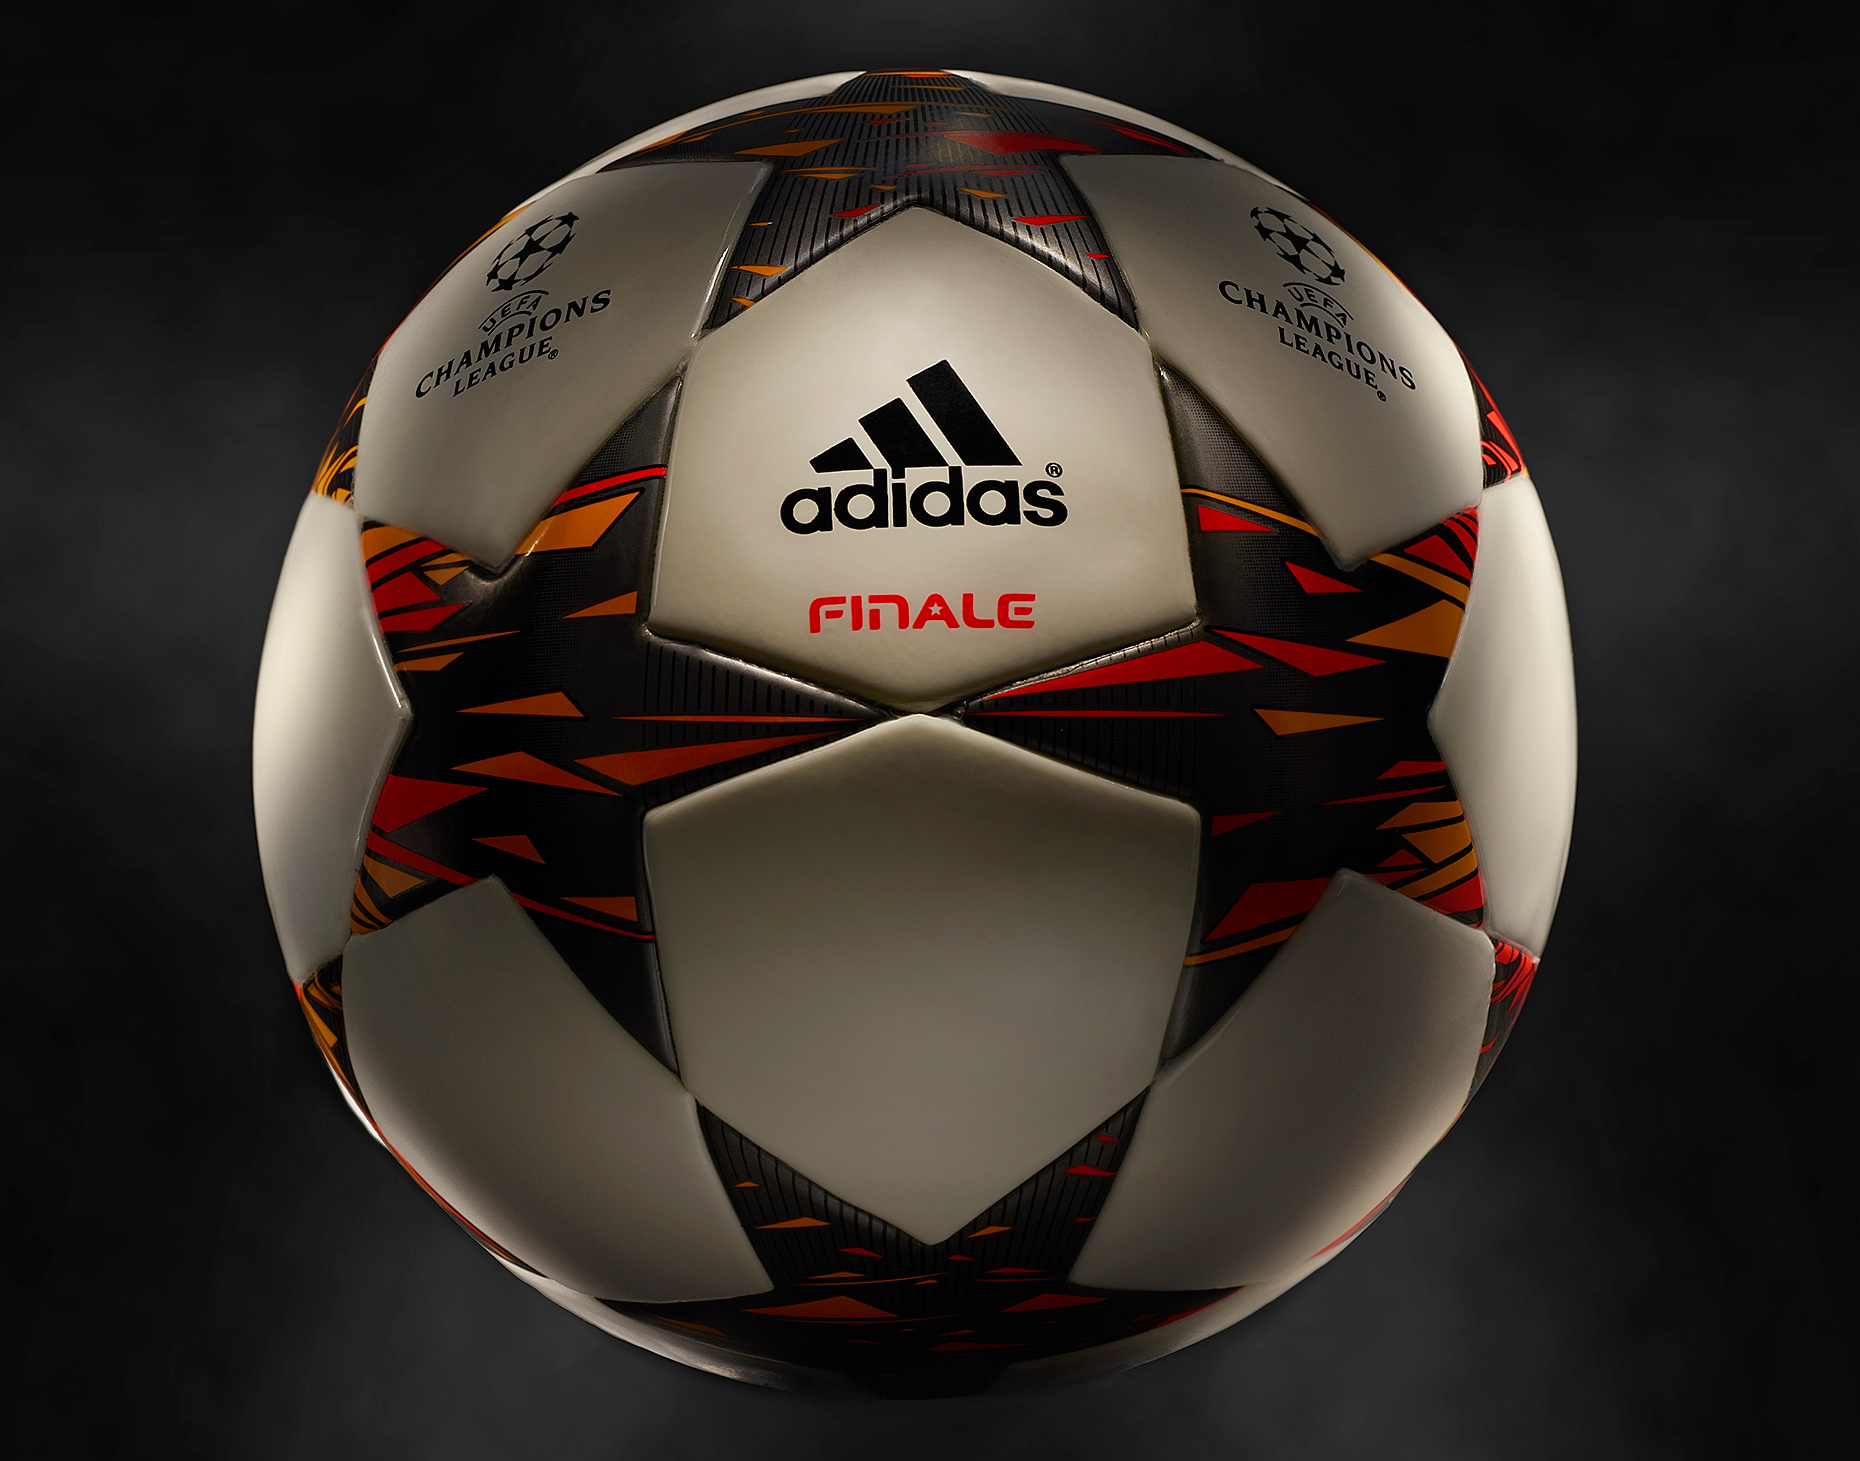 product photo of adidas finale 14 official champions league match soccer ball by brian kaldorf